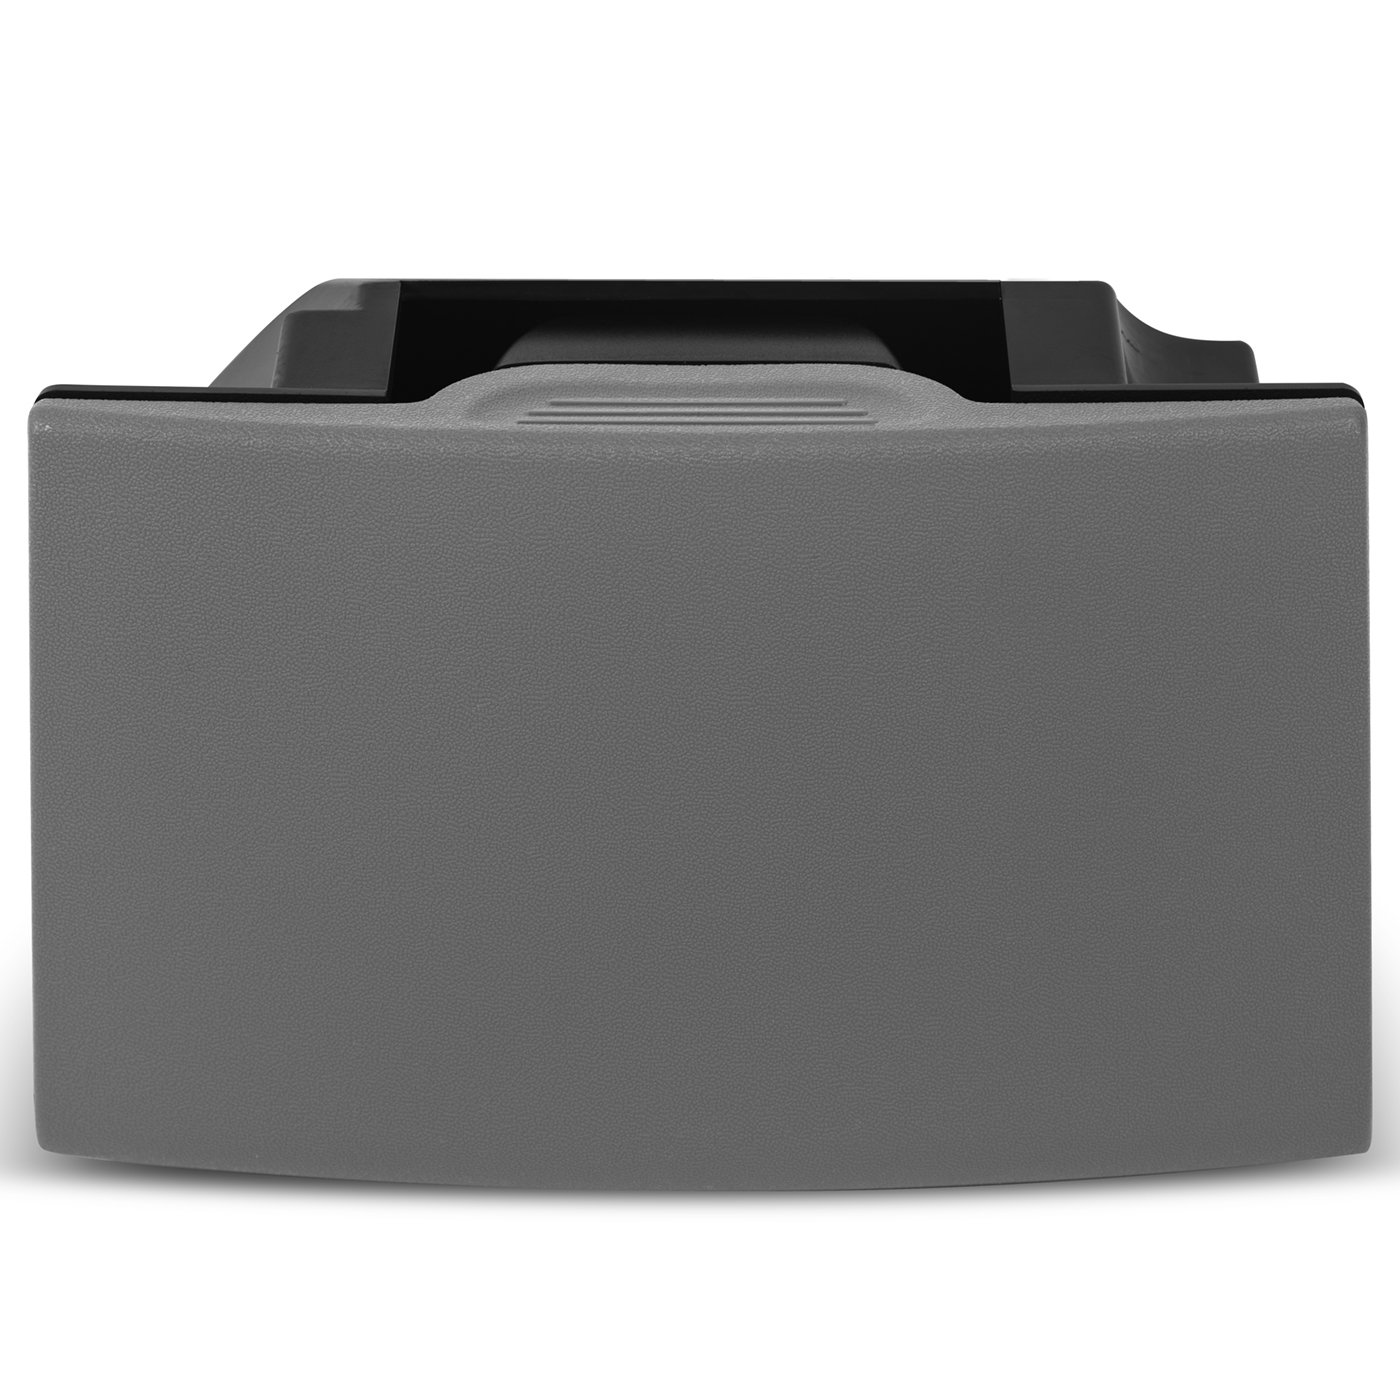 OxGord Cup Holder Insert for 05-12 Pathfinder 05-15 Xterra 05-19 Frontier - Replaces 96965-ZP00D Rear Seat Center Console Box Assy-Cup - Gray